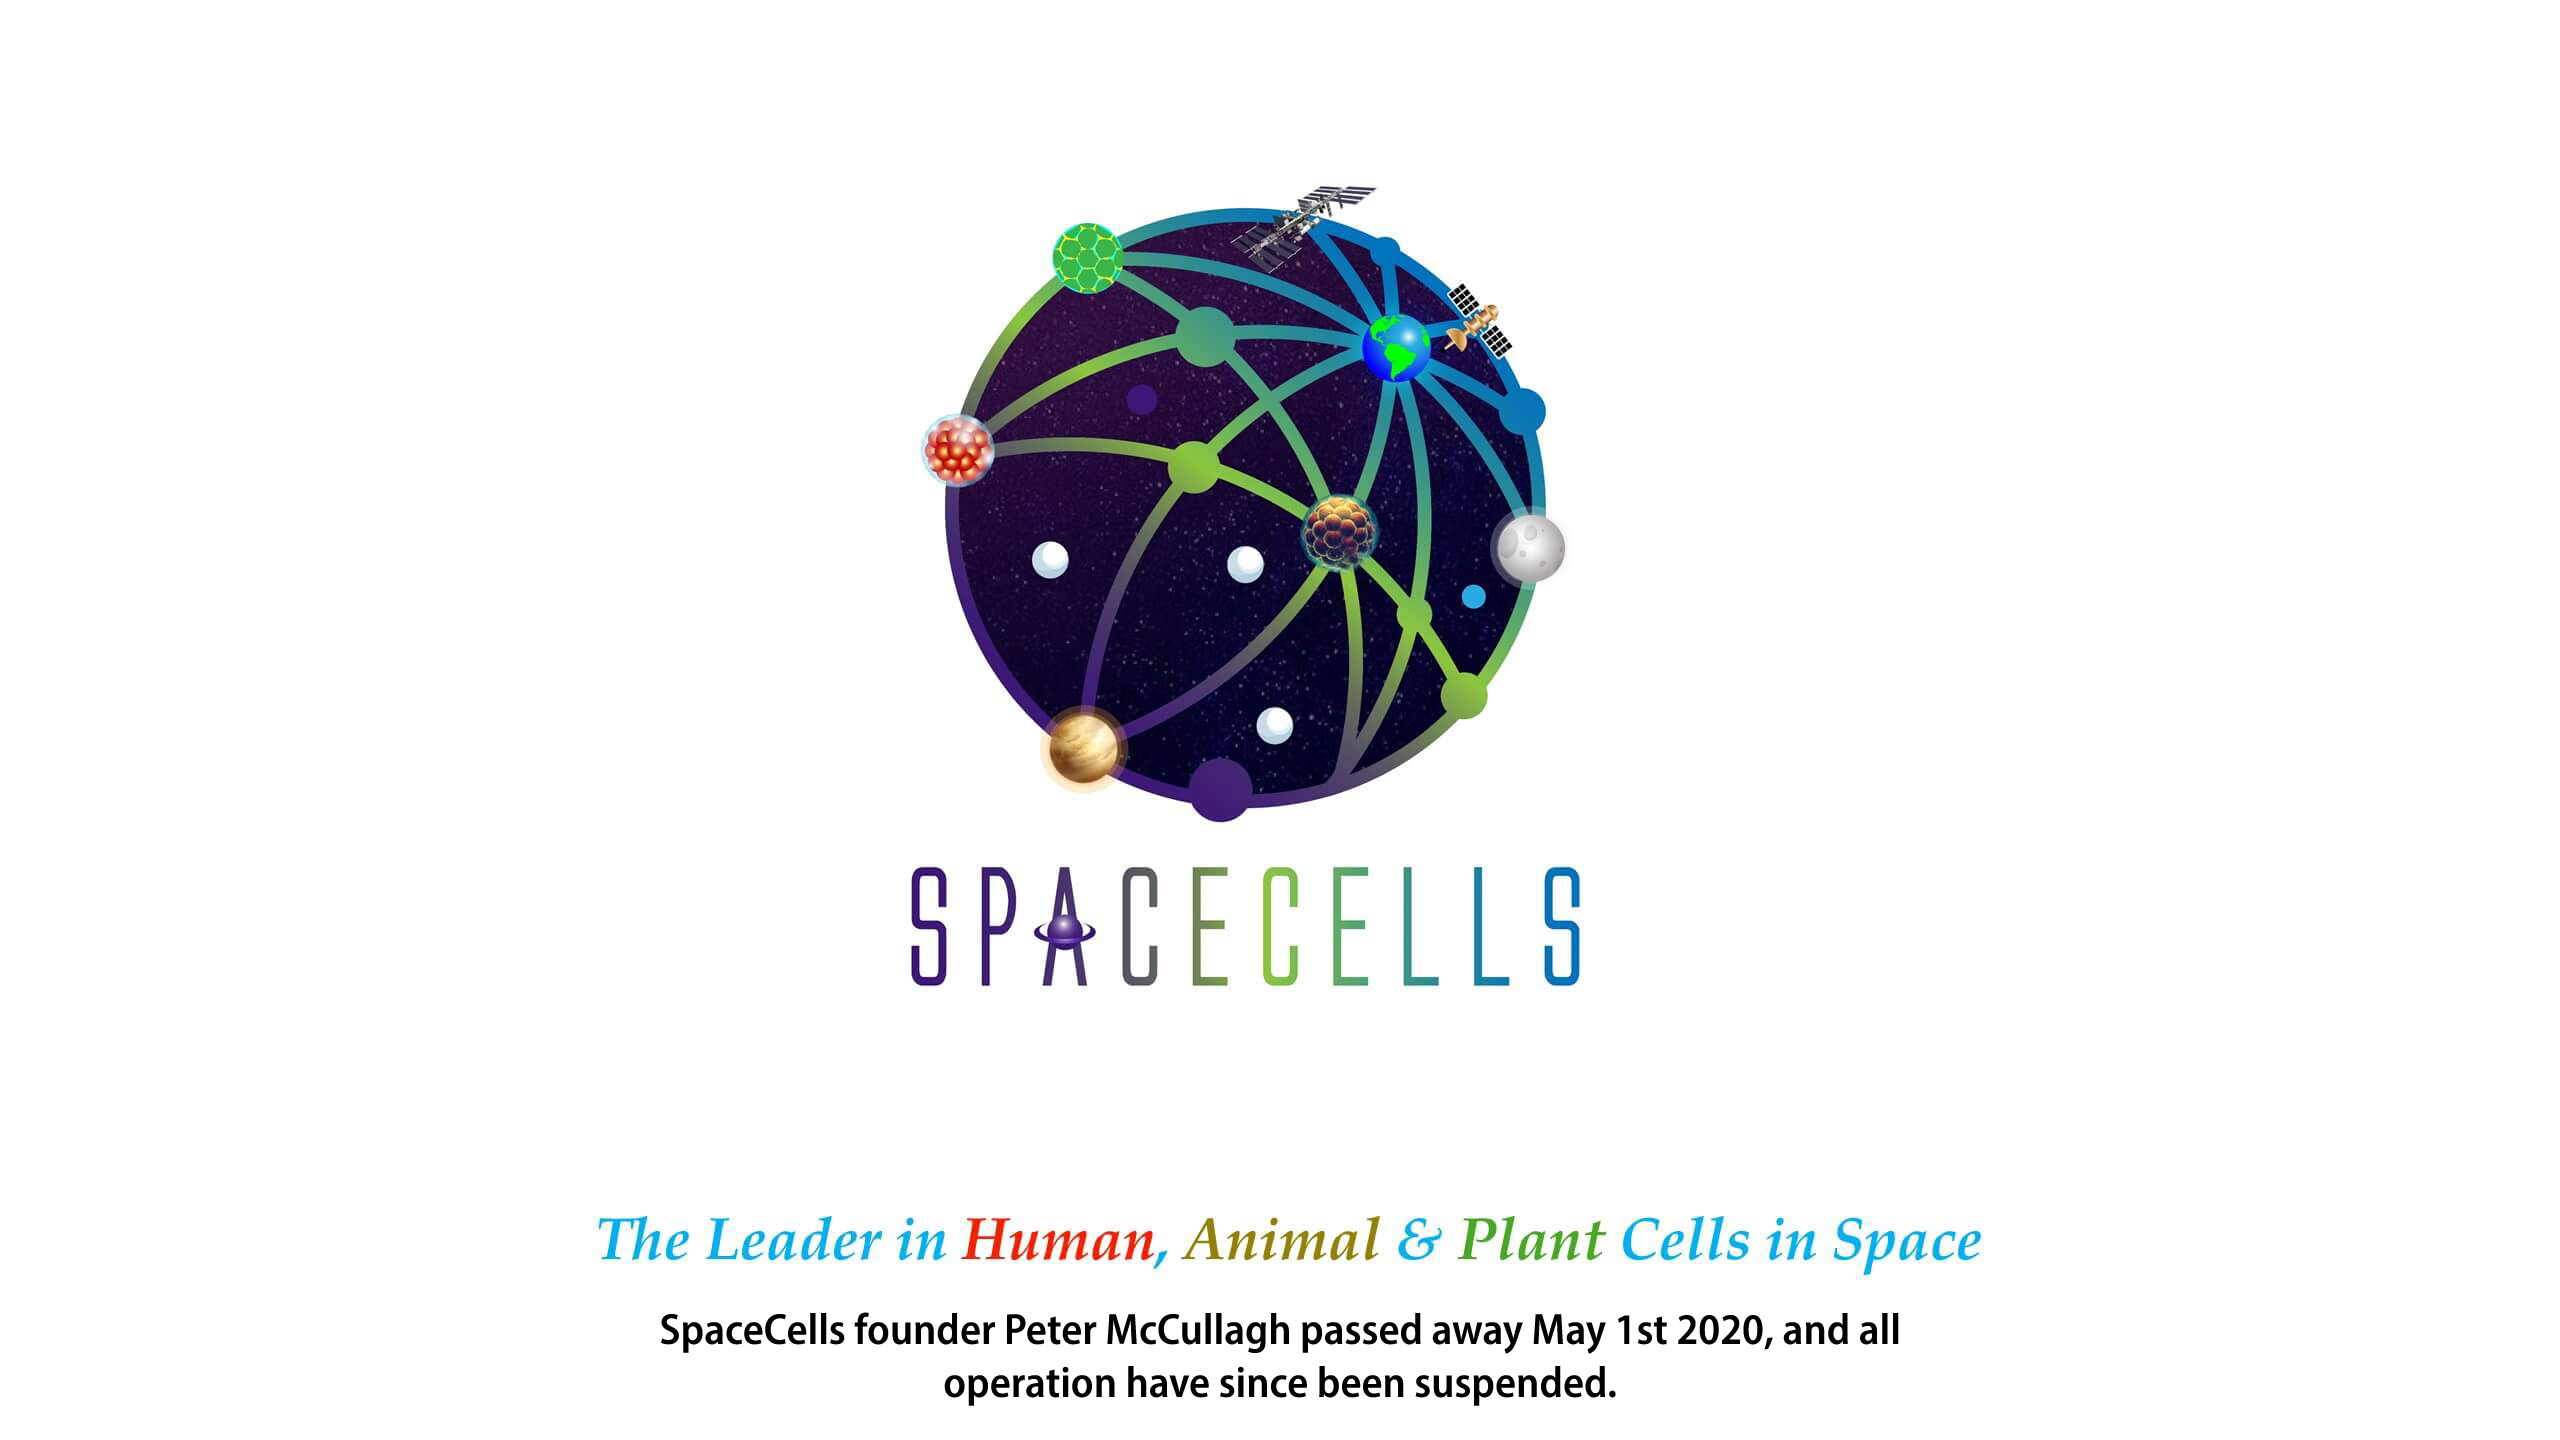 SpaceCells - The Leader in Human, Animal & Plant Cells in Spacw